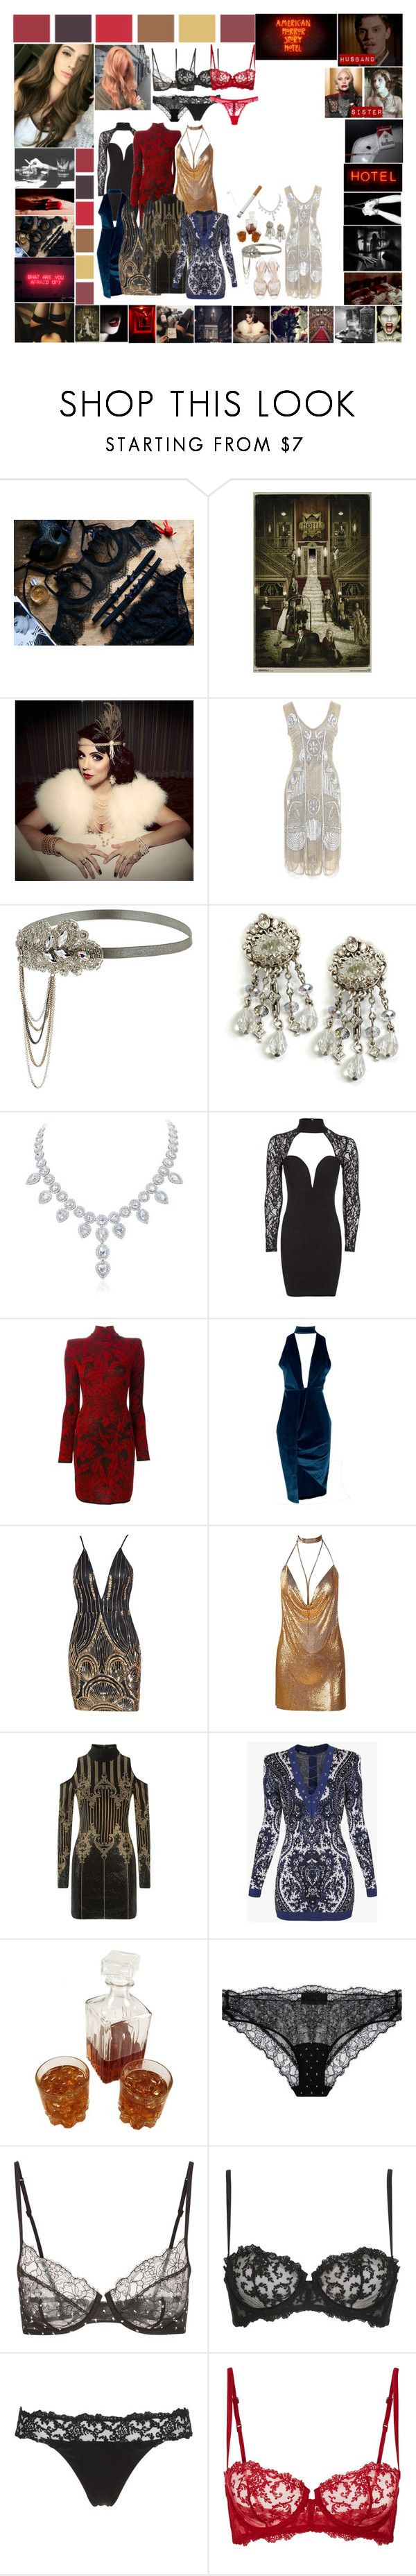 """American horror stories Hotel: Aurora March"" by silentdoll ❤ liked on Polyvore featuring Gatsby, Unique Vintage, Miss Selfridge, Sweet Romance, Rare London, Balmain, Boohoo and La Perla"